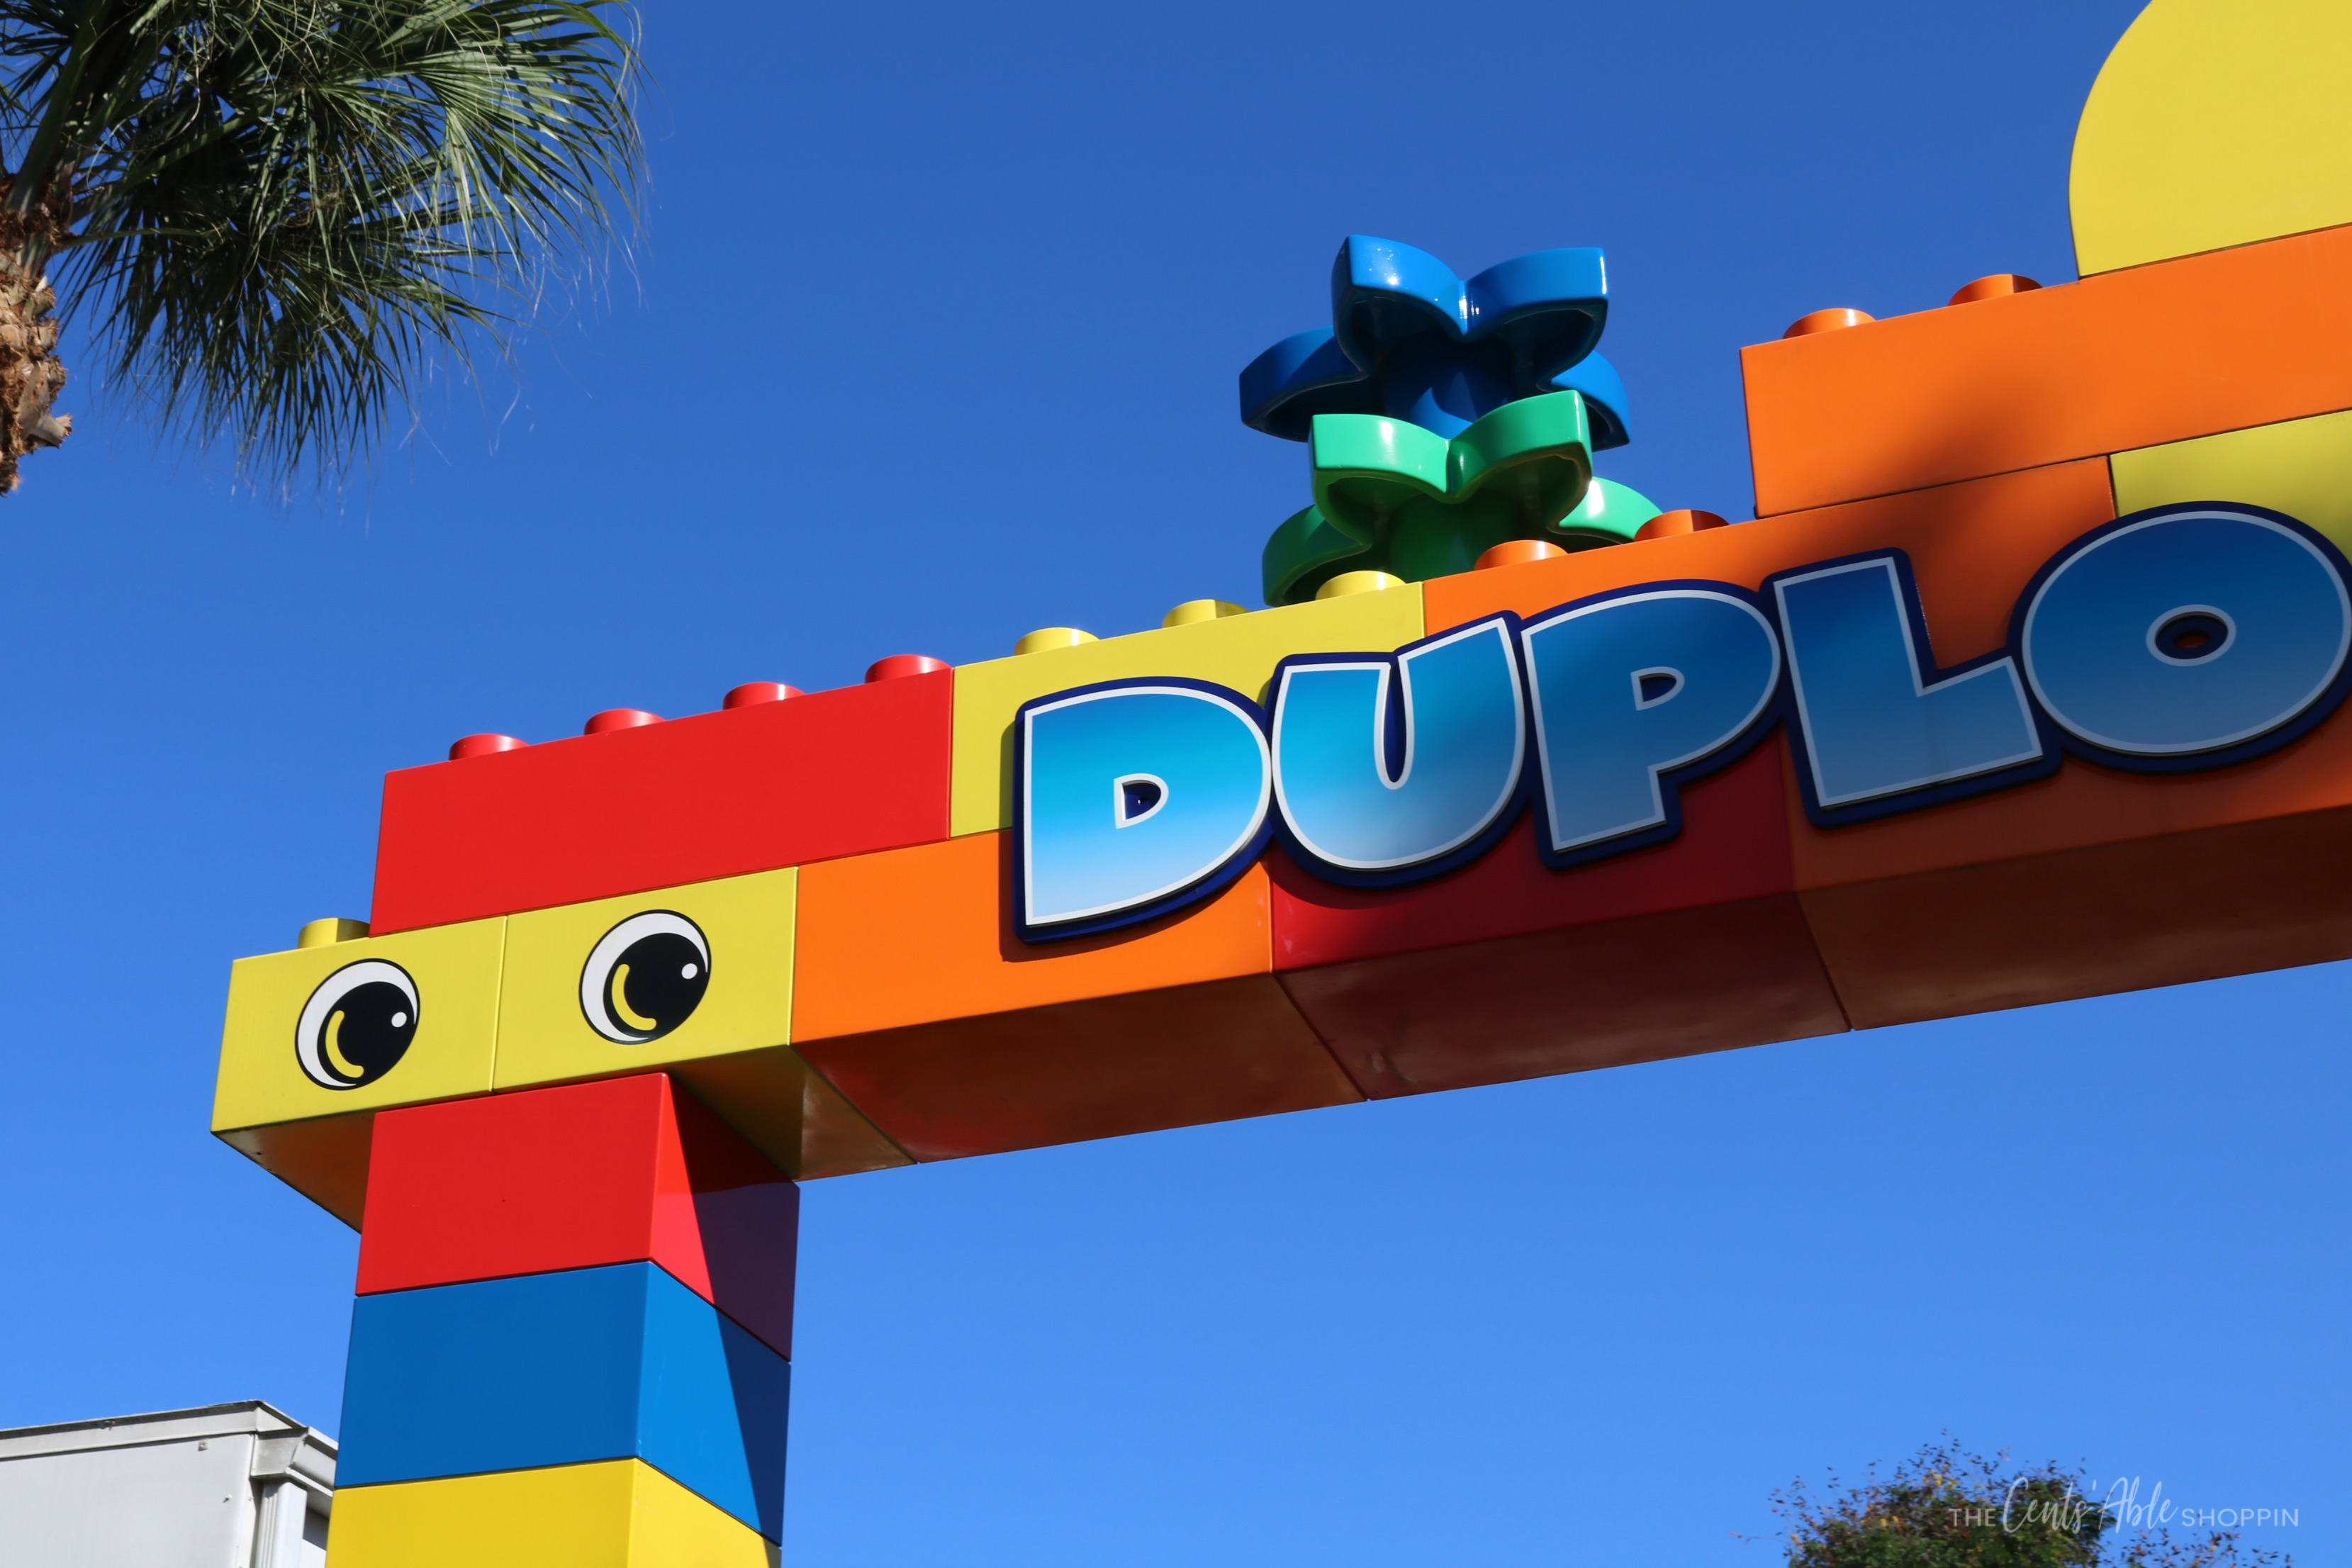 LEGOLAND Duplo Entrance, Florida